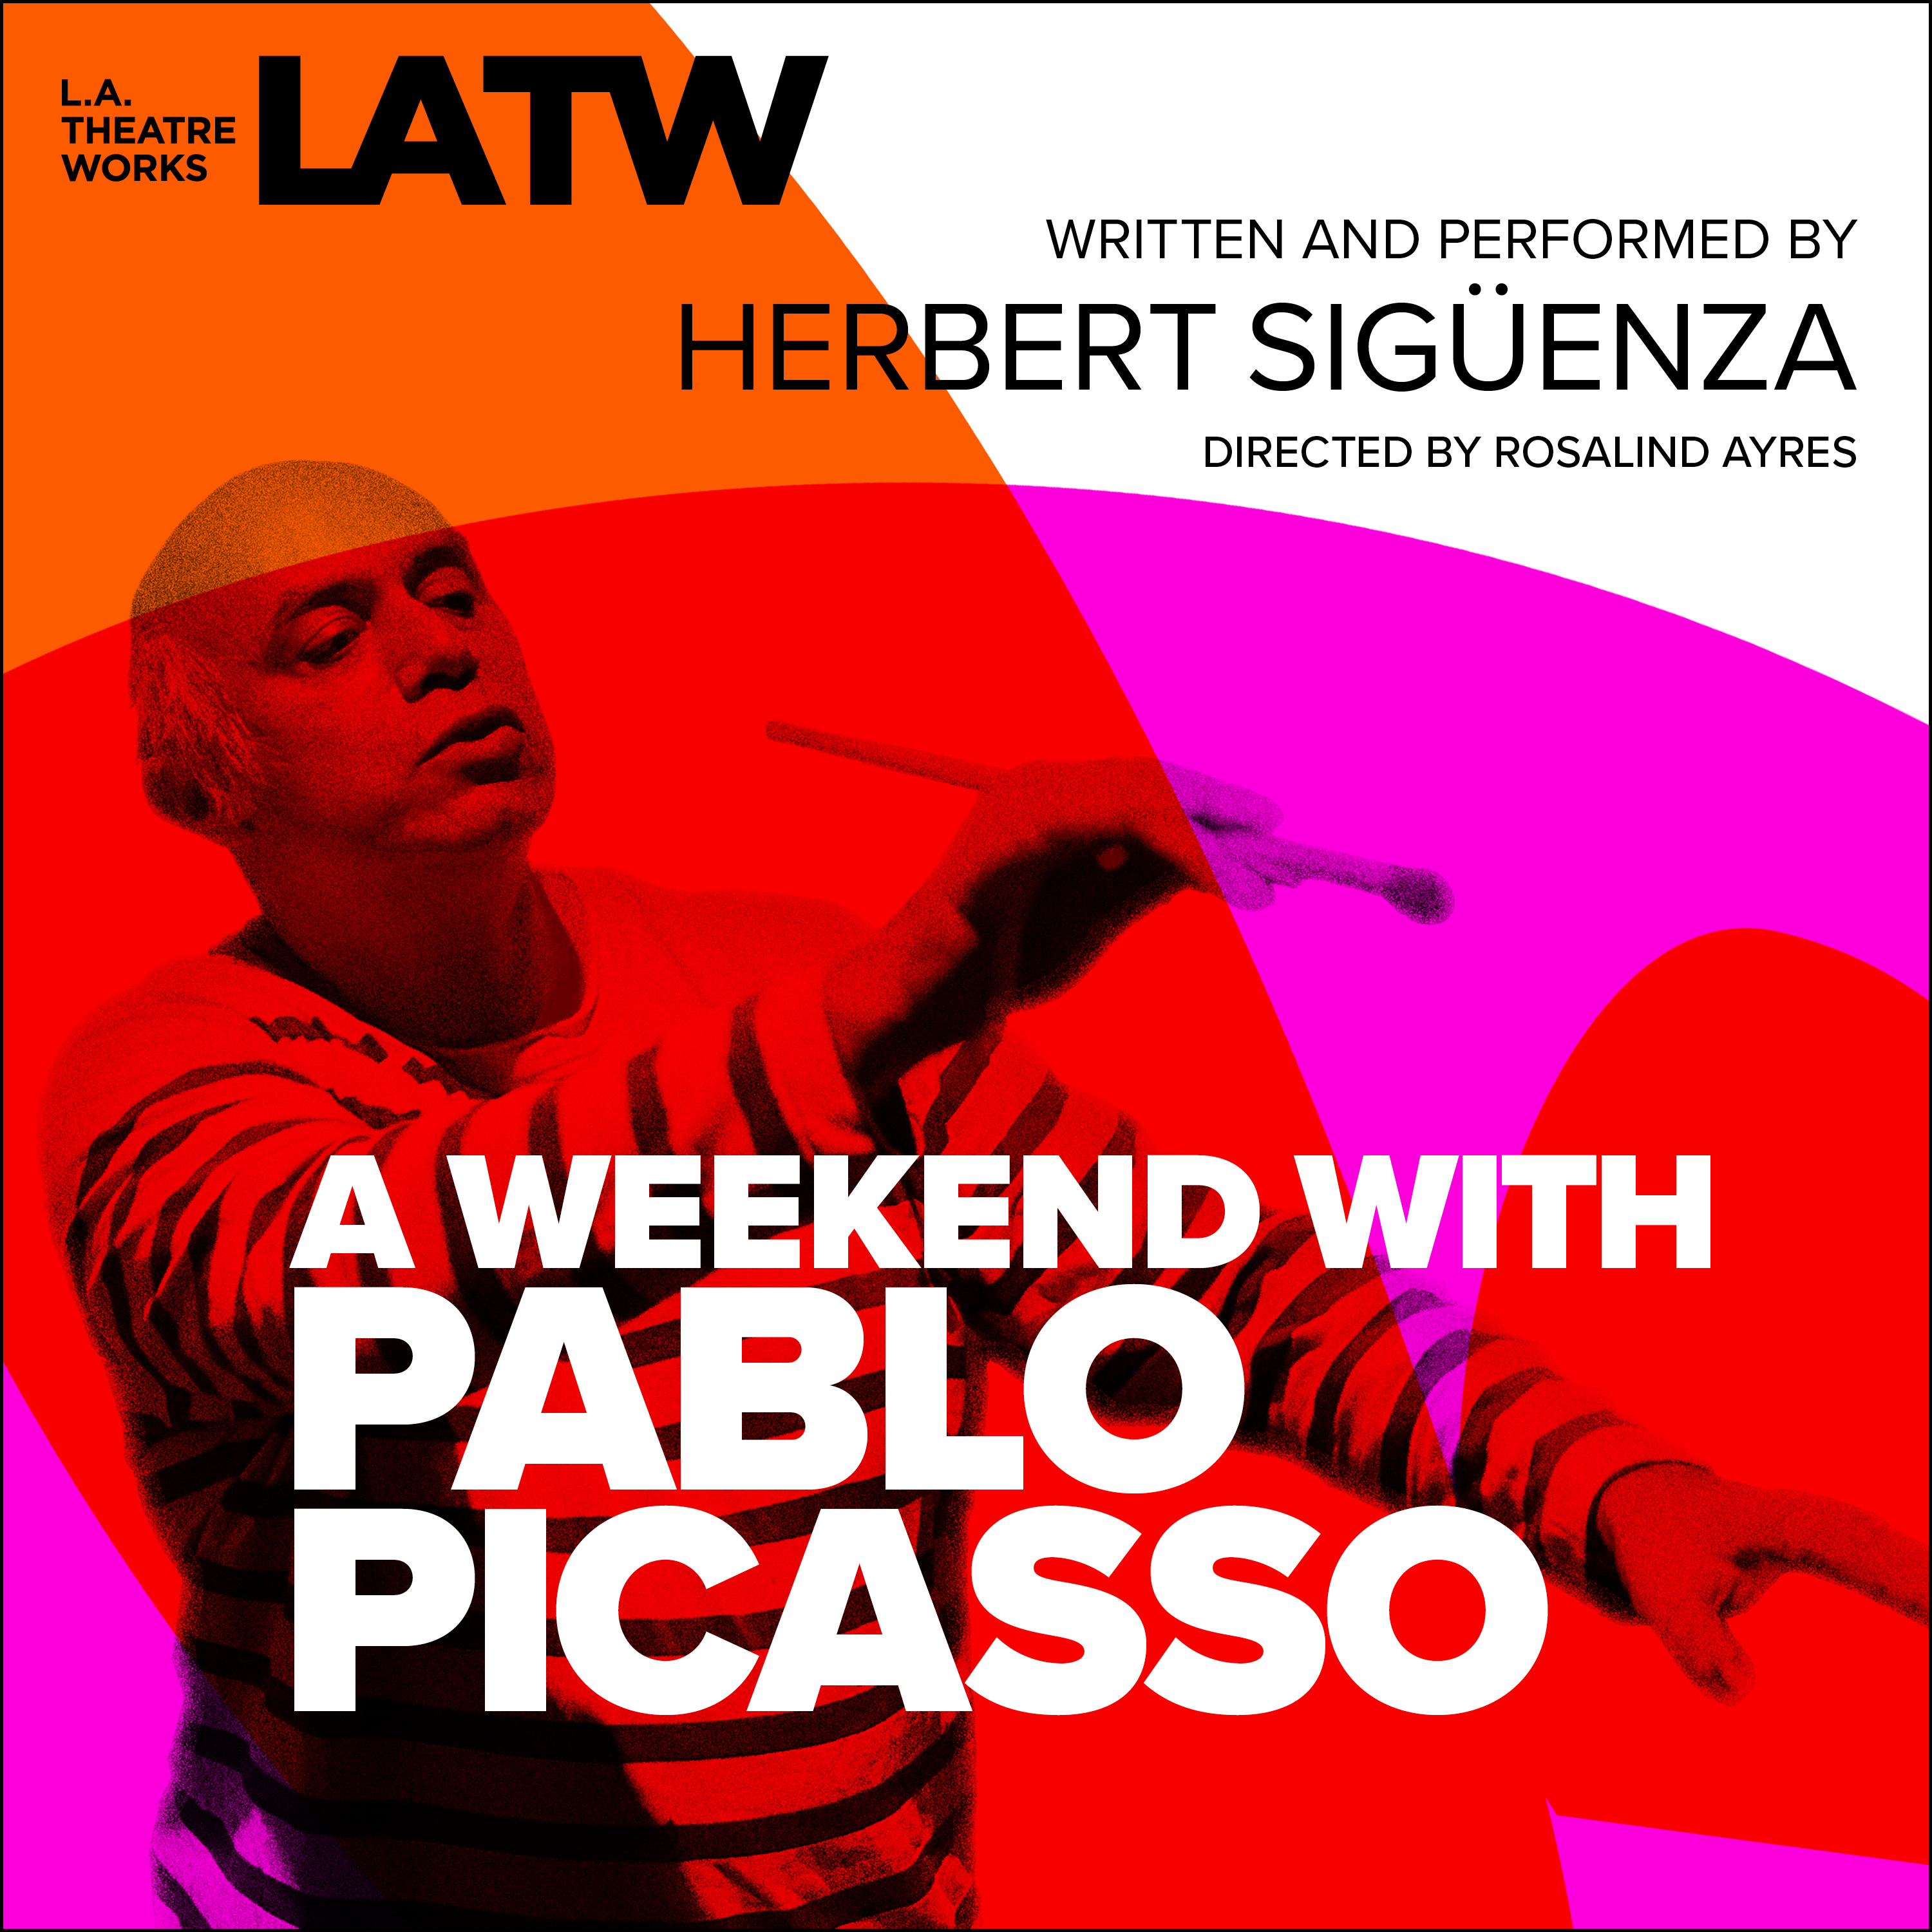 A_weekend_with_pablo_picasso_artwork_small